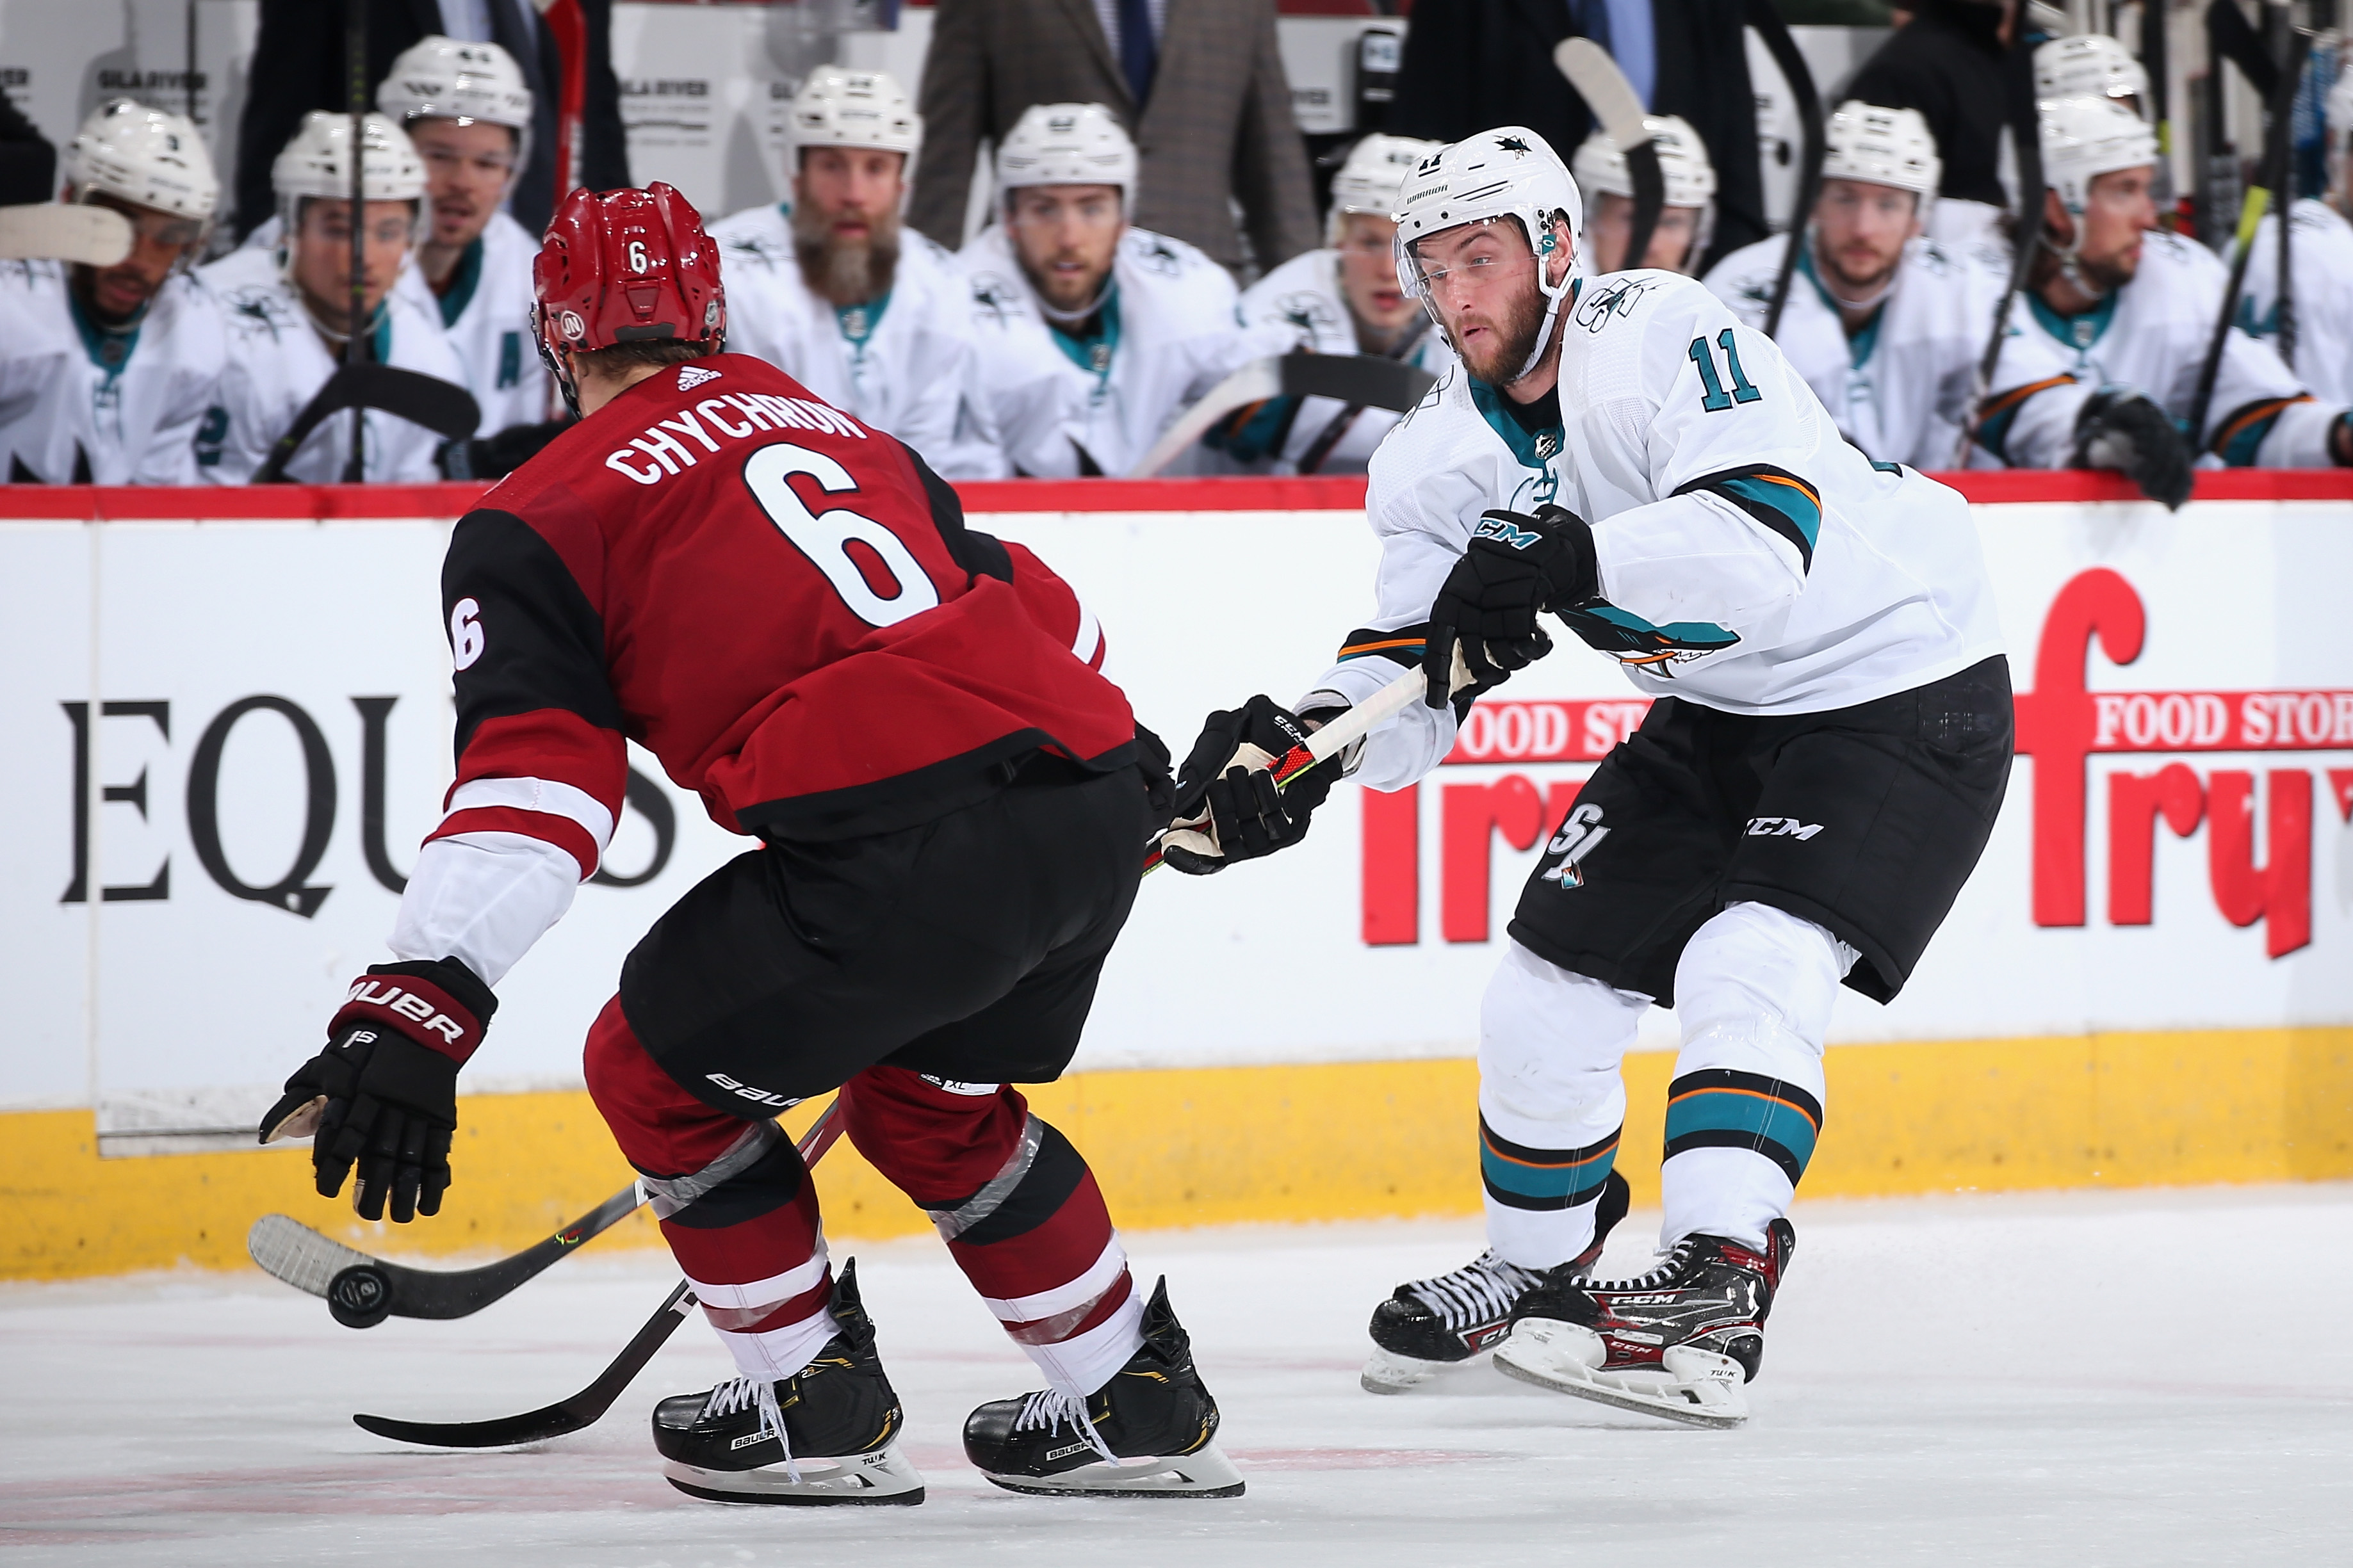 Stefan Noesen #11 of the San Jose Sharks moves the puck past Jakob Chychrun #6 of the Arizona Coyotes during the third period of the NHL game at Gila River Arena on January 14, 2020 in Glendale, Arizona. The Coyotes defeated the Sharks 6-3.